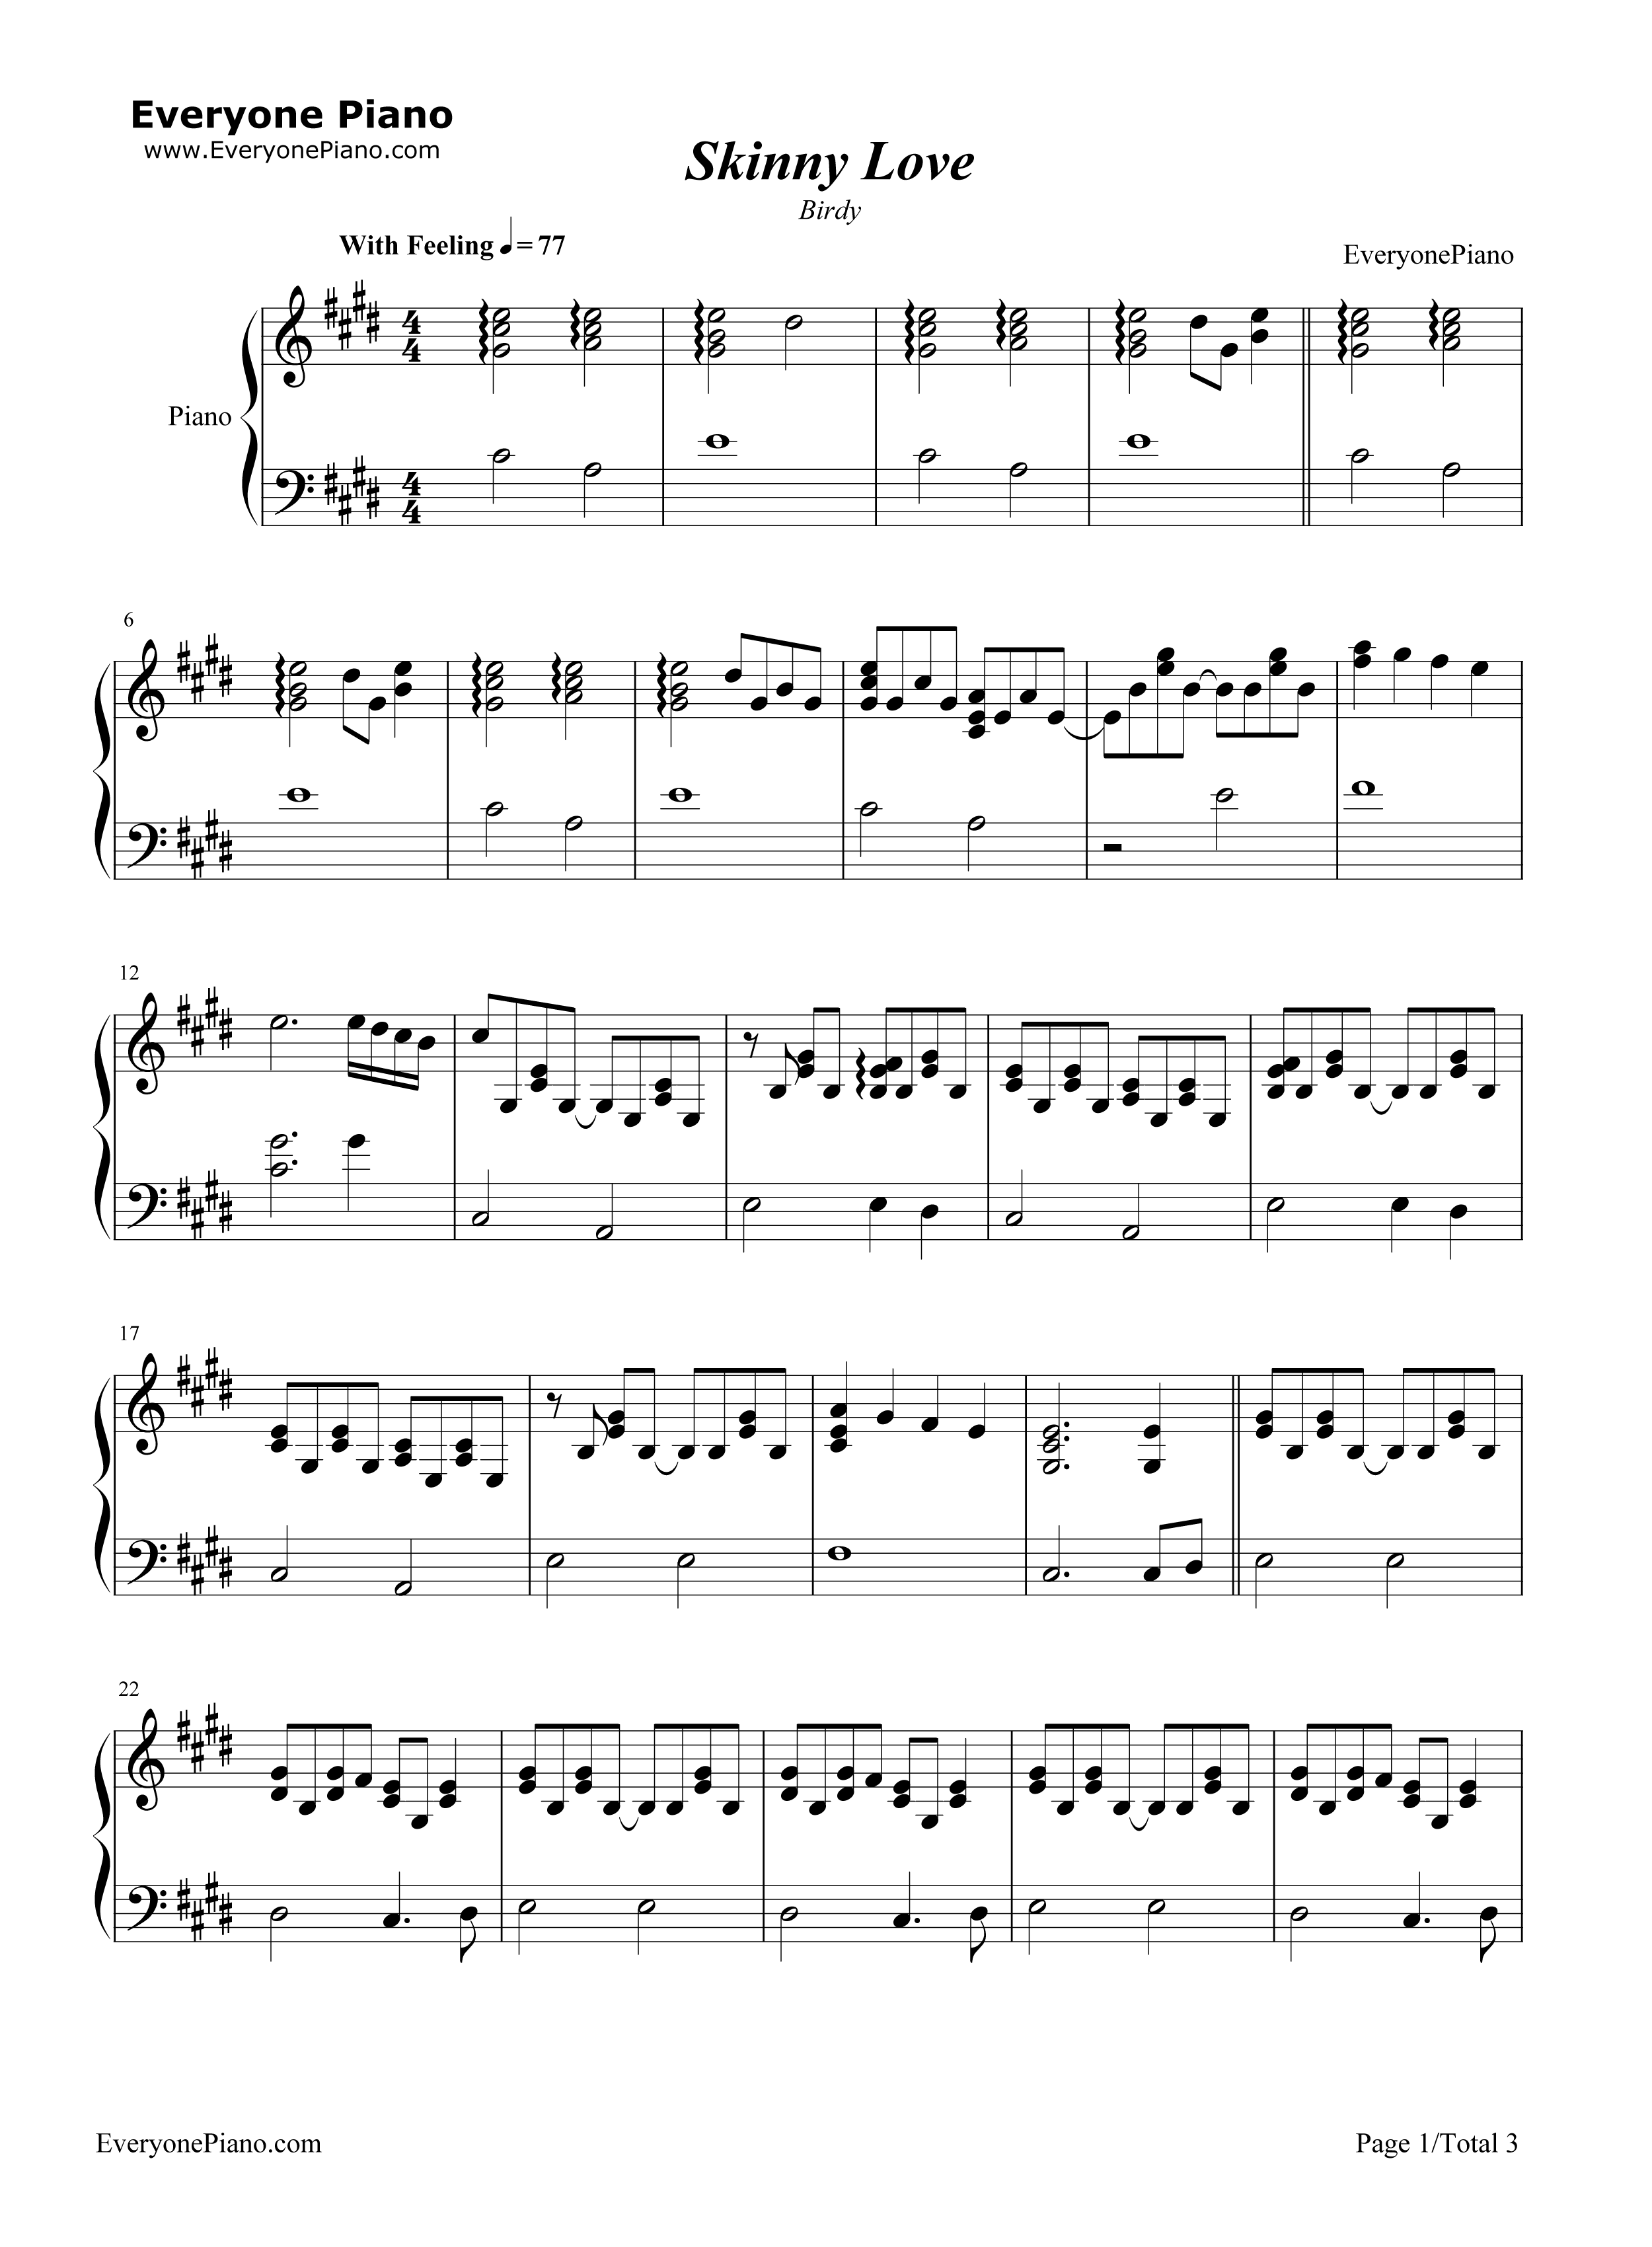 Skinny Love-Birdy Stave Preview 1-Free Piano Sheet Music u0026 Piano Chords